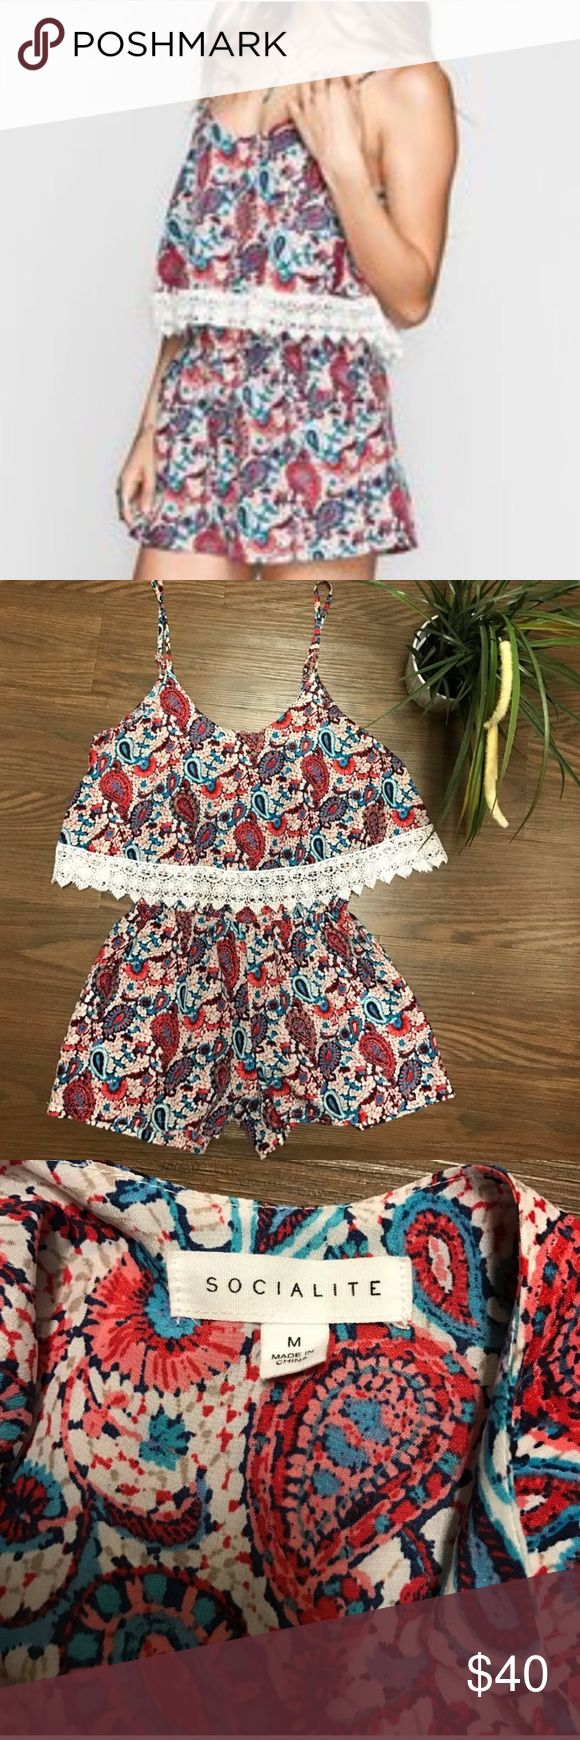 🍒🍒SWEET AND SASSY SOCIALITE ROMPER🍒🍒 This is a paisley lace trimmed romper rubber waist for that added definition. Some of the colors include cream orange turquoise. Ready for spring and fall. Or if you're lucky enough to take it on vacation with you now. rayon machine washable. Lenght 30 inches, waist 30 inches with lots of stretch. Nordstrom Pants Jumpsuits & Rompers